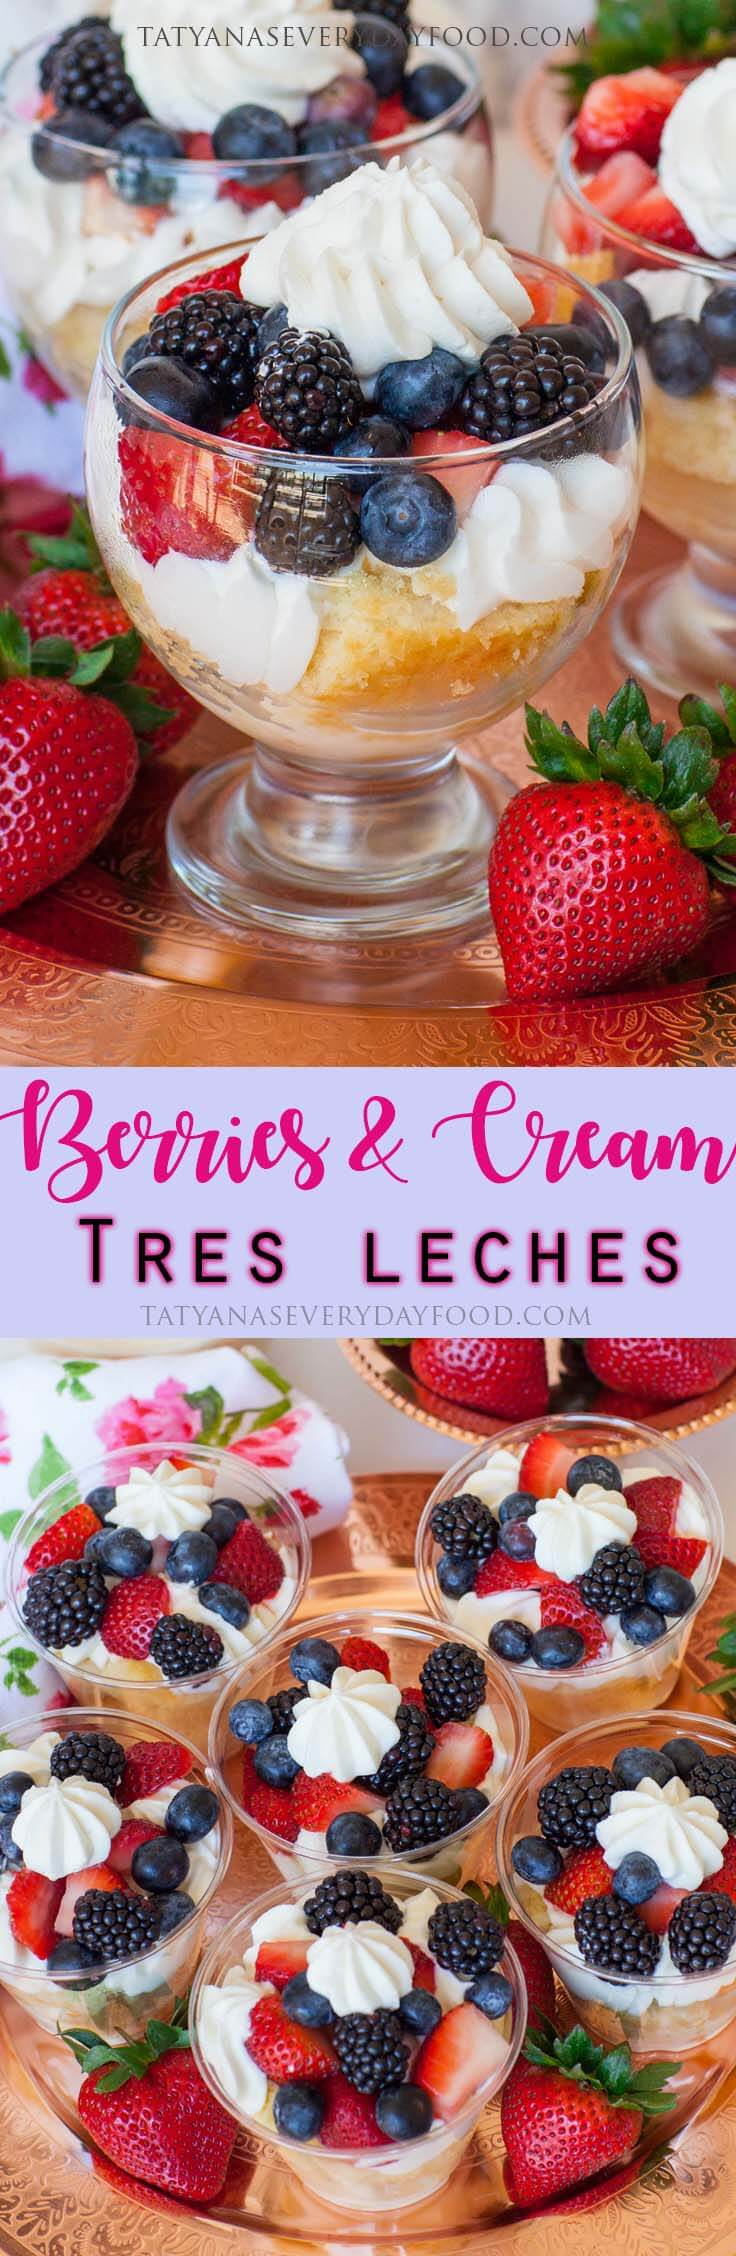 Berries & Cream Tres Leches Cake Parfait video recipe